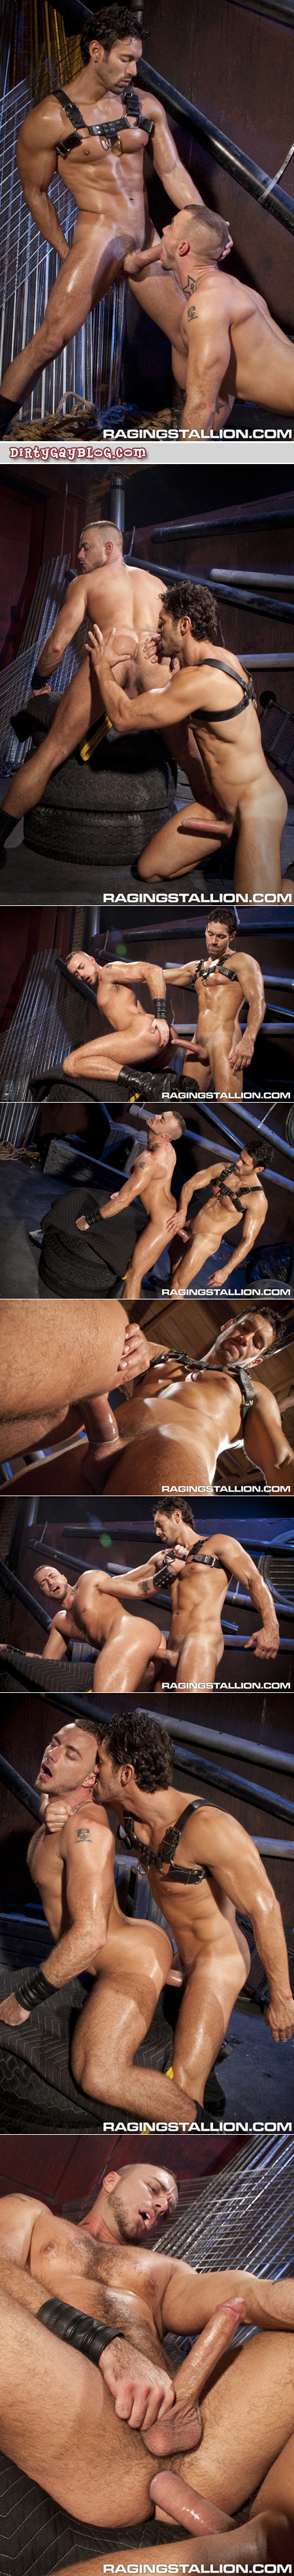 Fit hairy guy in leather gets fucked by a smooth Latino leatherman's gigantic dick.